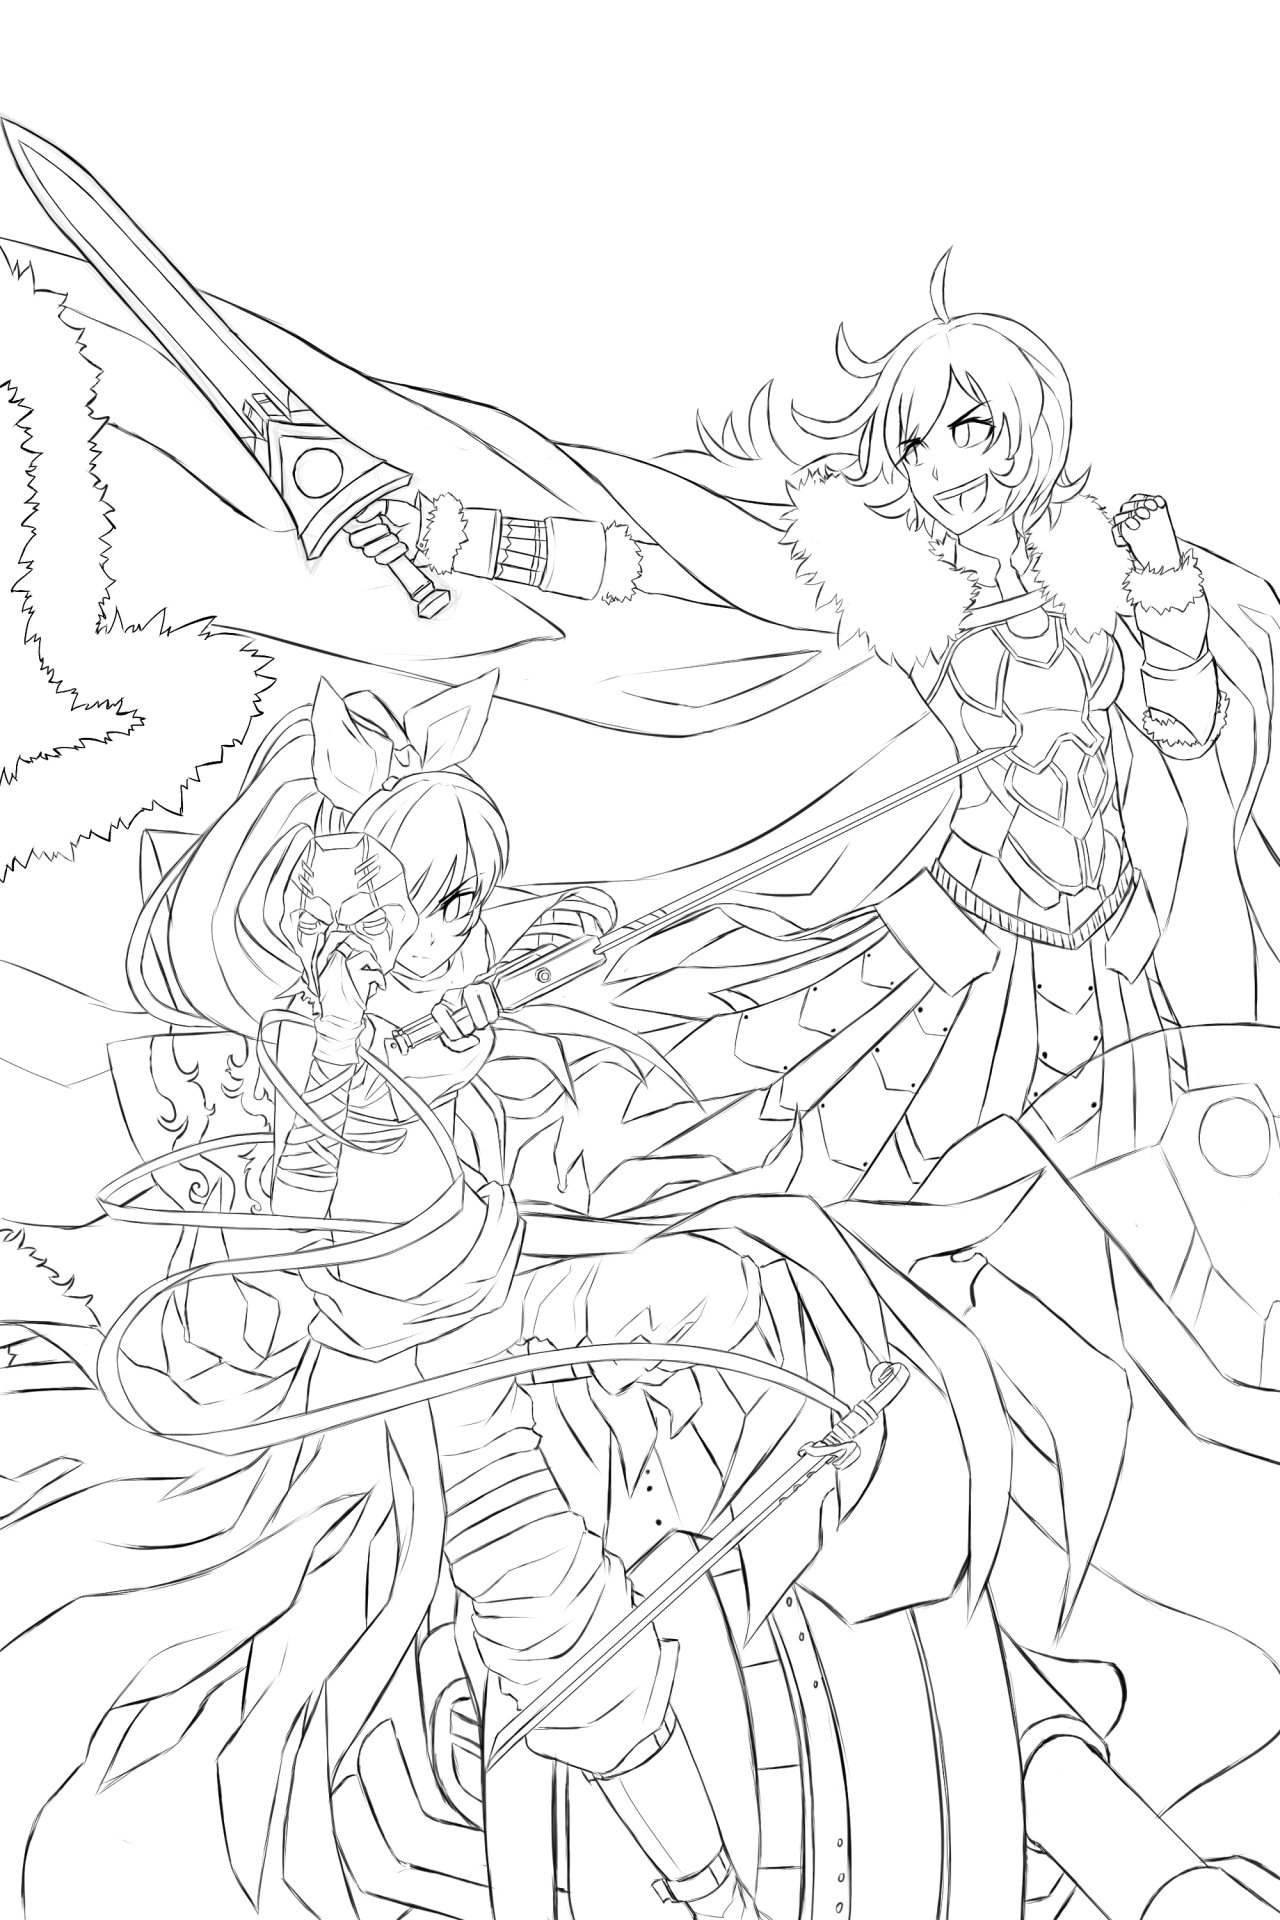 rwby coloring pages Pin by Jennifer Simic on Coloring pages | Colouring pages  rwby coloring pages